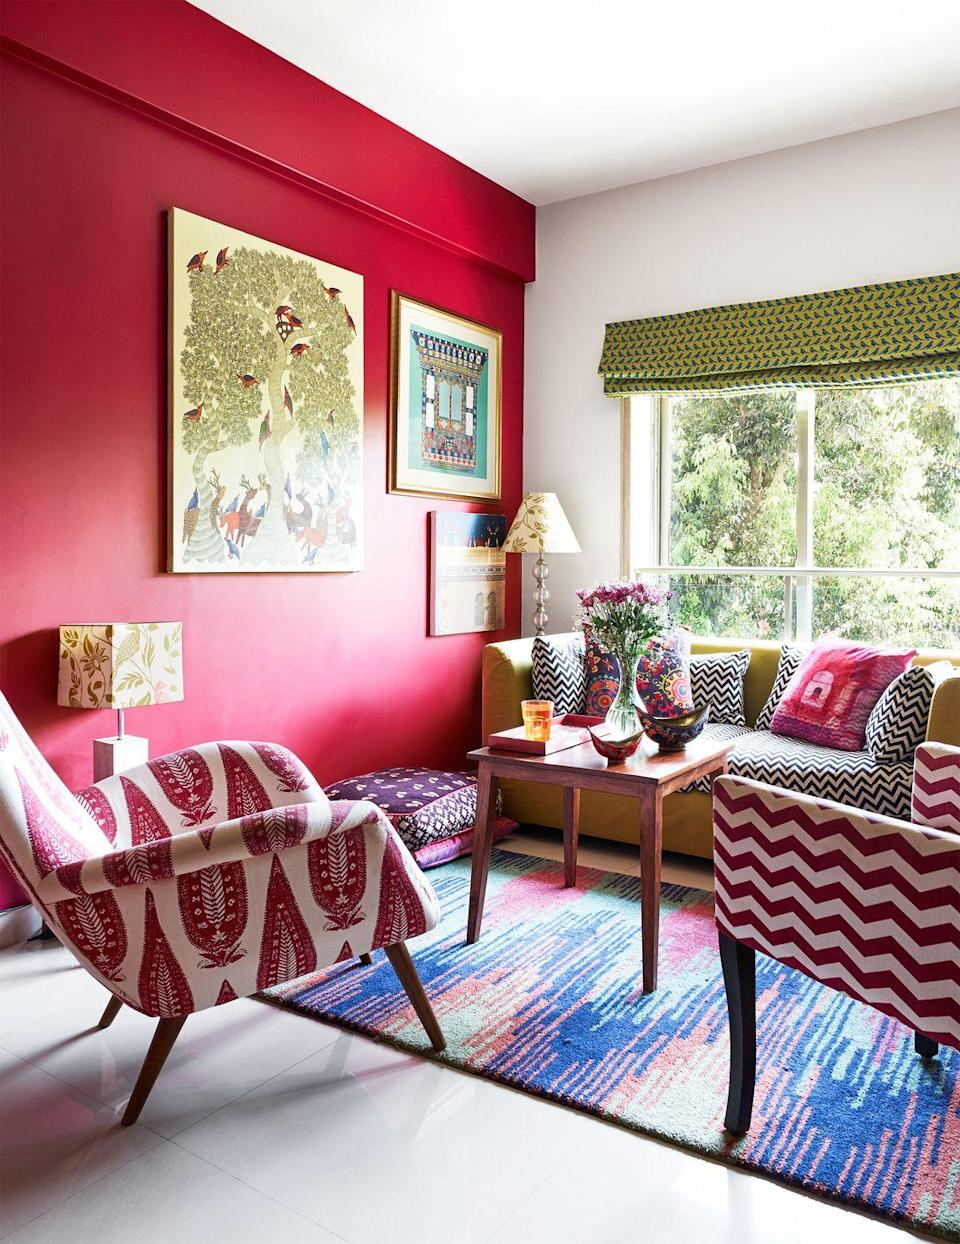 """<p>Pattern packed and bursting with vibrant energy, this living room designed by <a href=""""https://indiacircus.com/"""" rel=""""nofollow noopener"""" target=""""_blank"""" data-ylk=""""slk:Krsnaa Mehta"""" class=""""link rapid-noclick-resp"""">Krsnaa Mehta</a> will inspire you to never hold back when it comes to color. For an especially bold statement, paint an accent wall bright red. </p>"""